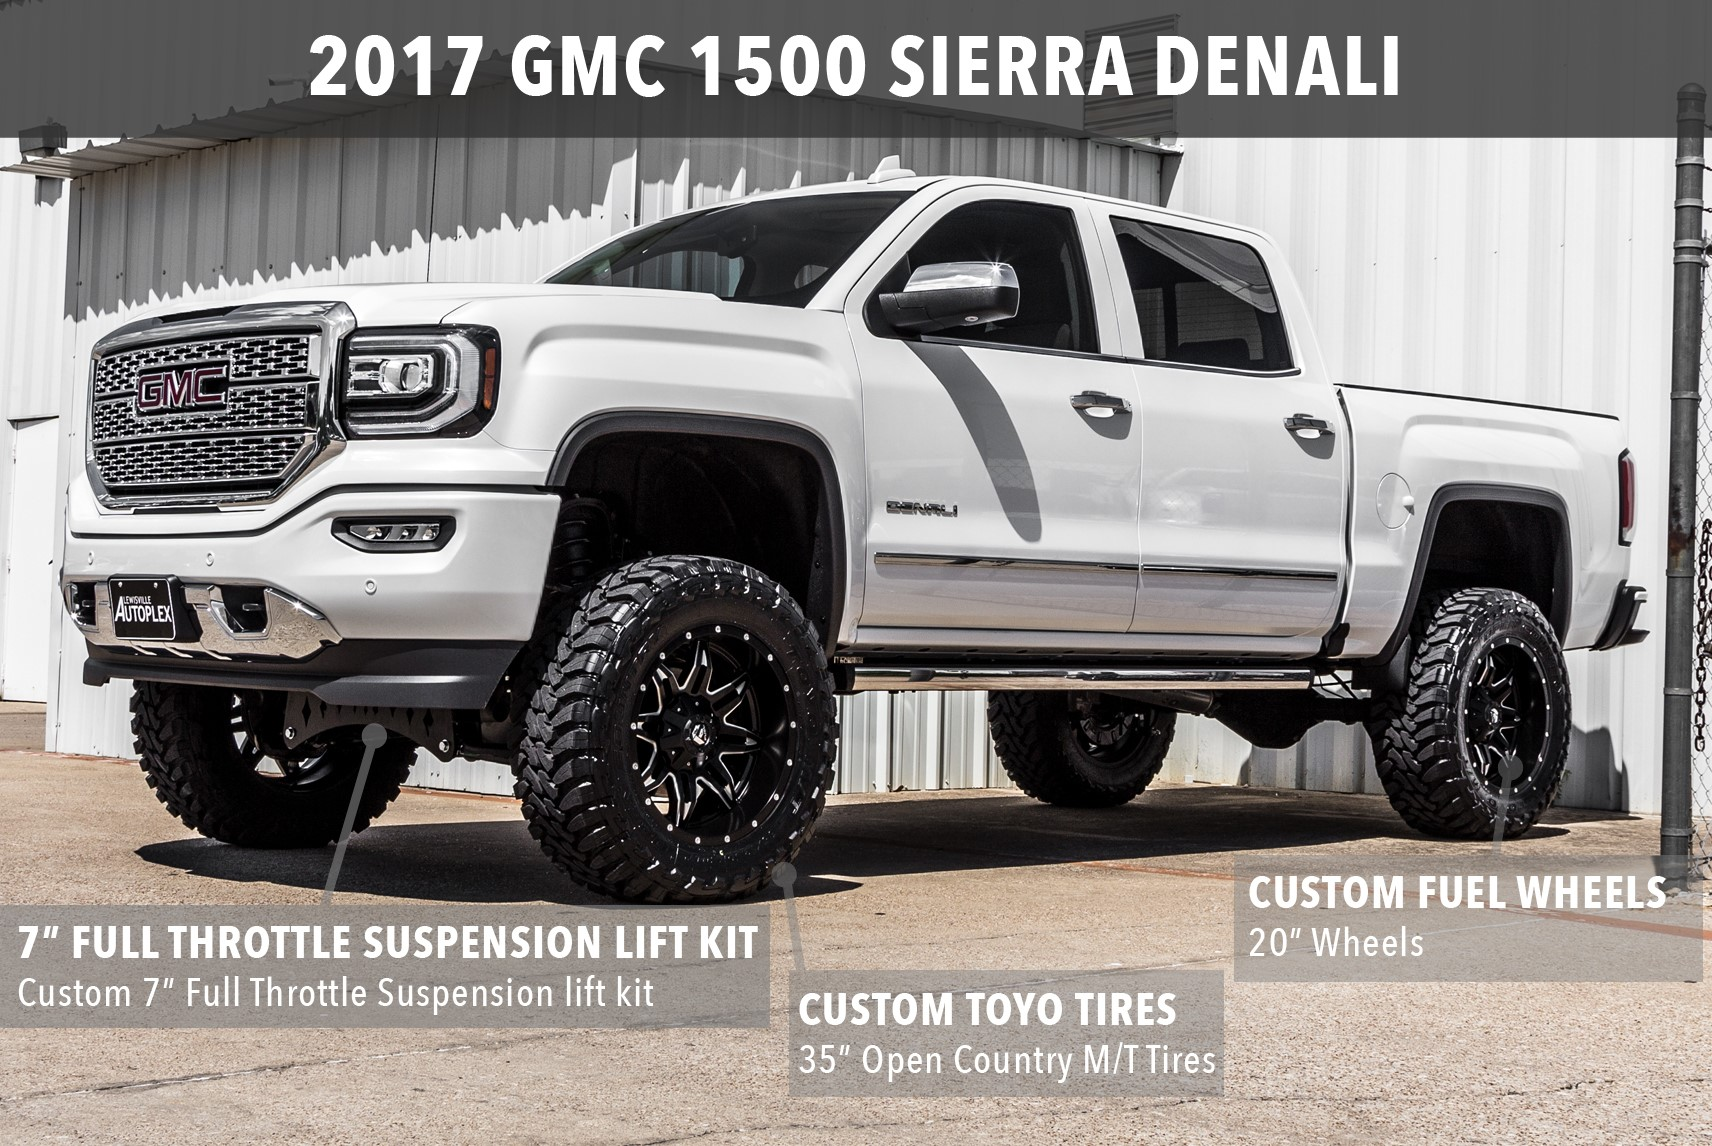 Ford Dealership Houston >> Lewisville Autoplex Custom Lifted Trucks | View Completed Builds near Dallas TX